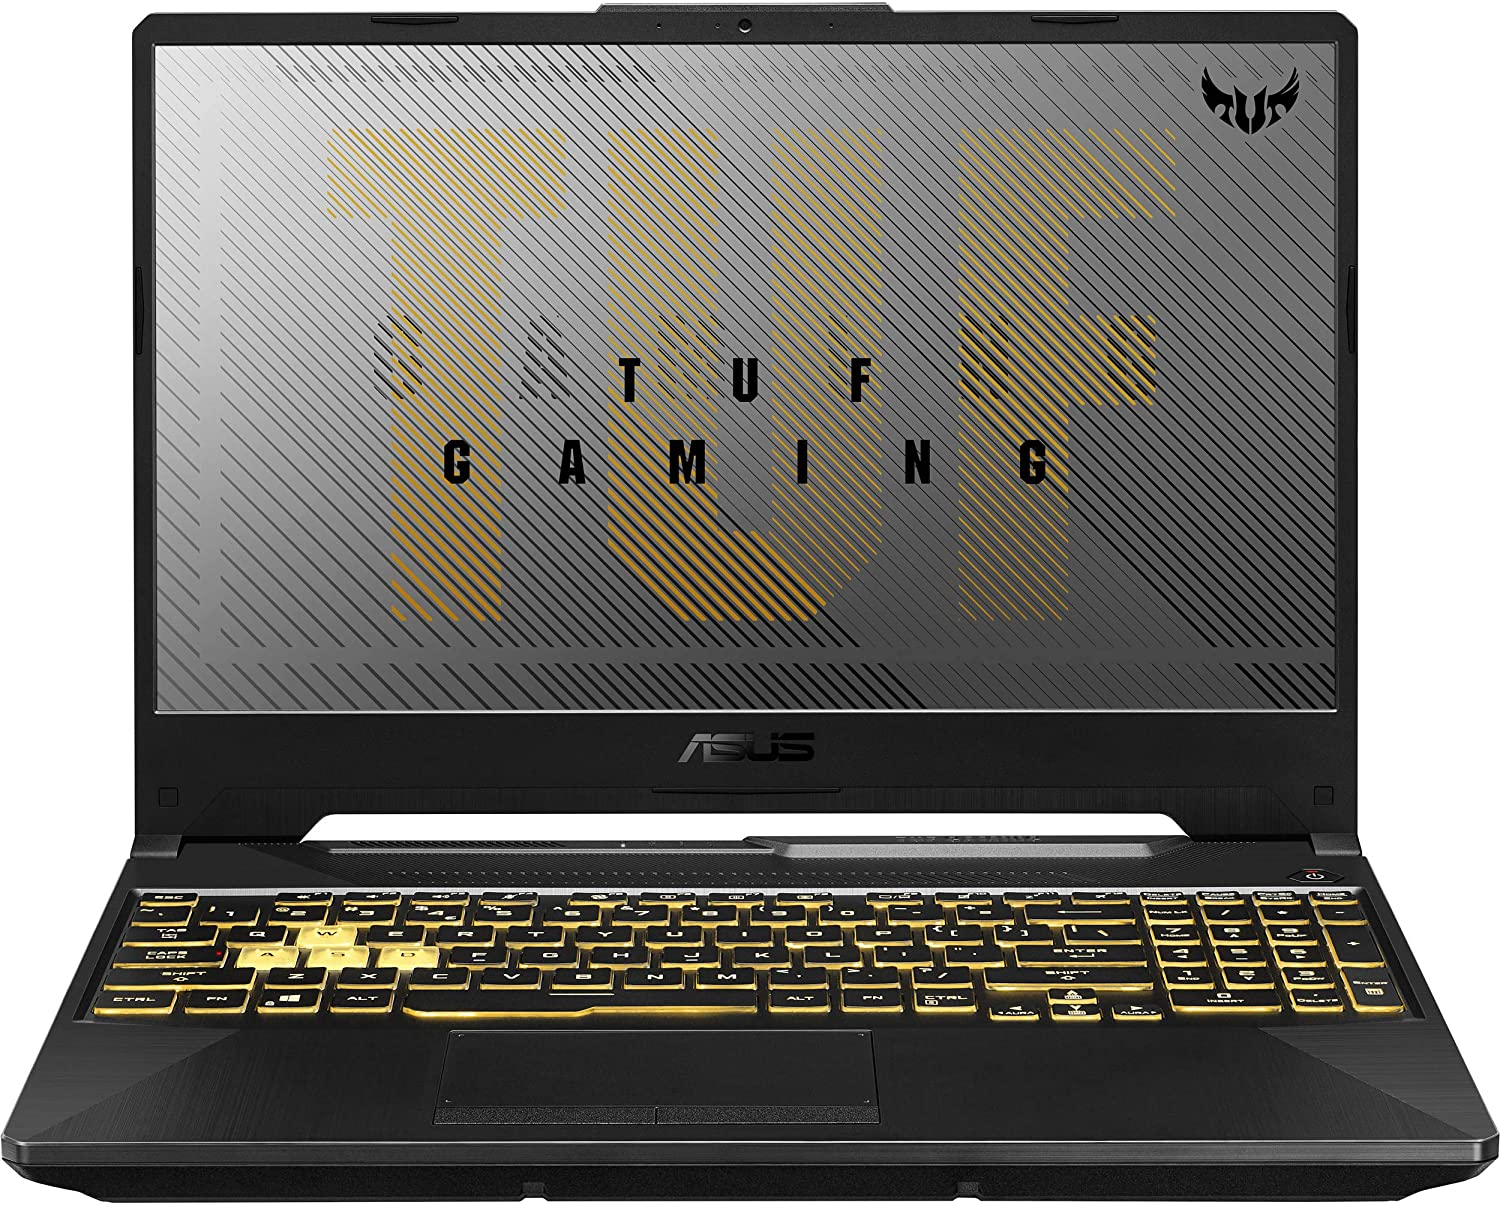 "ASUS TUF VR Ready Gaming Laptop, 15.6"" IPS FHD, AMD Ryzen 7-4800H Octa-Core up to 4.20 GHz, NVIDIA RTX 2060, 16GB RAM, 1TB SSD, RGB Backlit KB, RJ-45 Ethernet, Win 10"